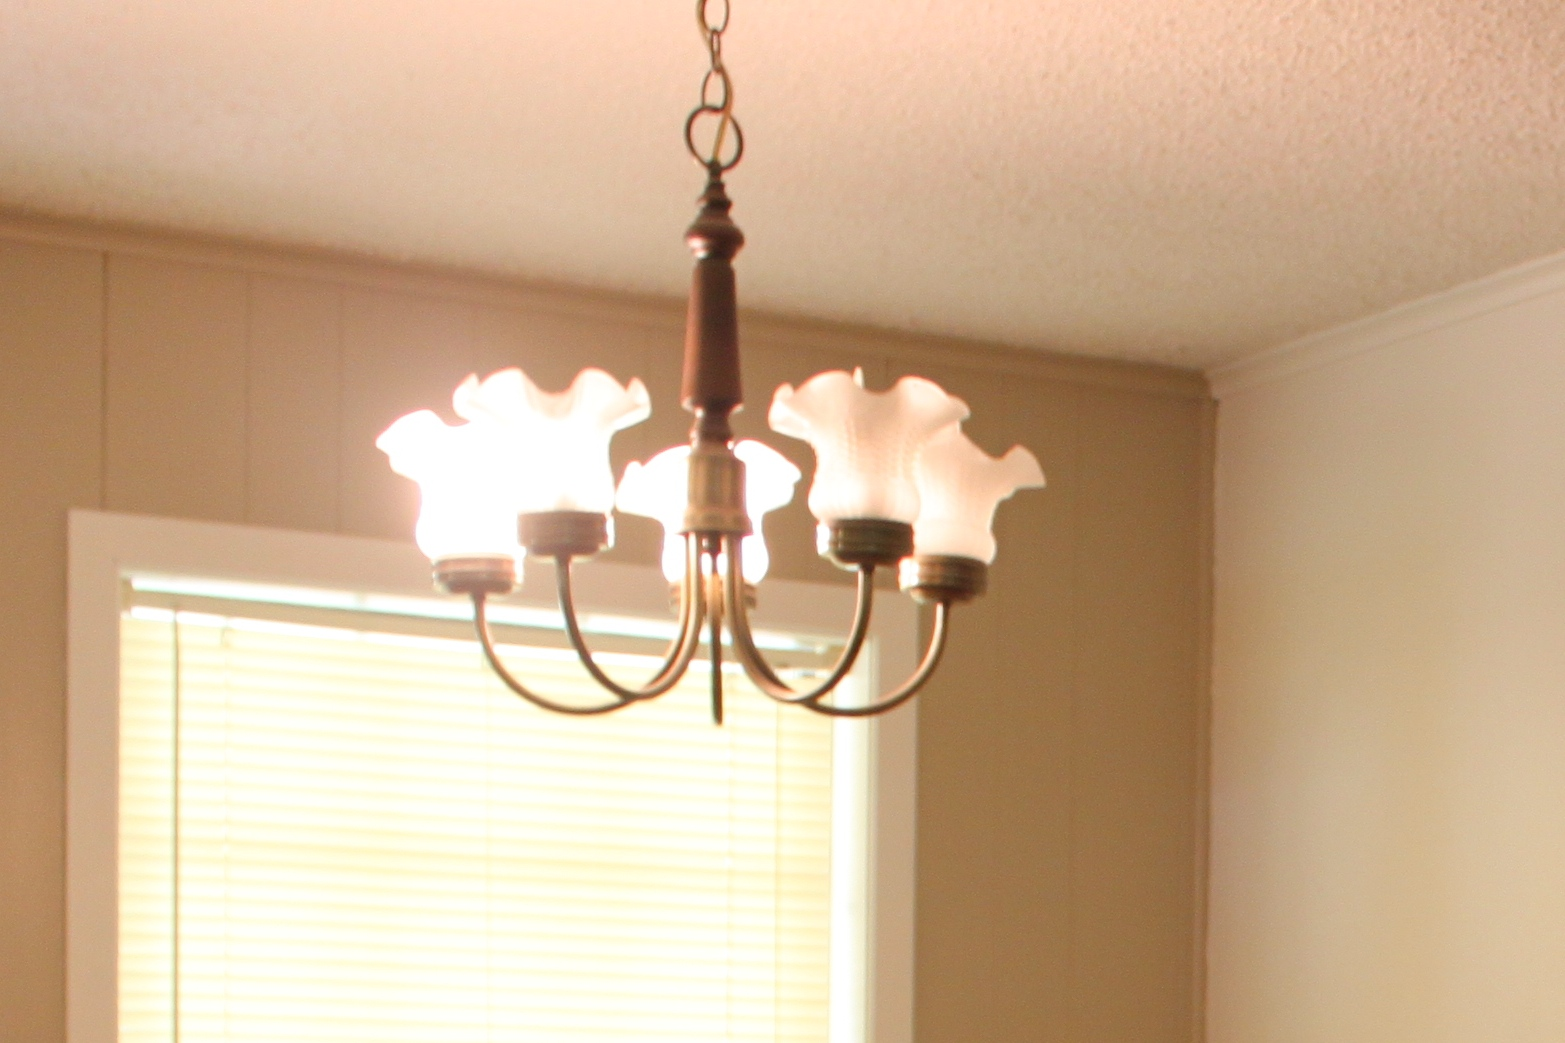 The b farm candle chandelier with glass teacups it wasnt anything pretty to look at with its antique brass and frilly glass globes so down it came and got replaced by a far cooler light arubaitofo Choice Image